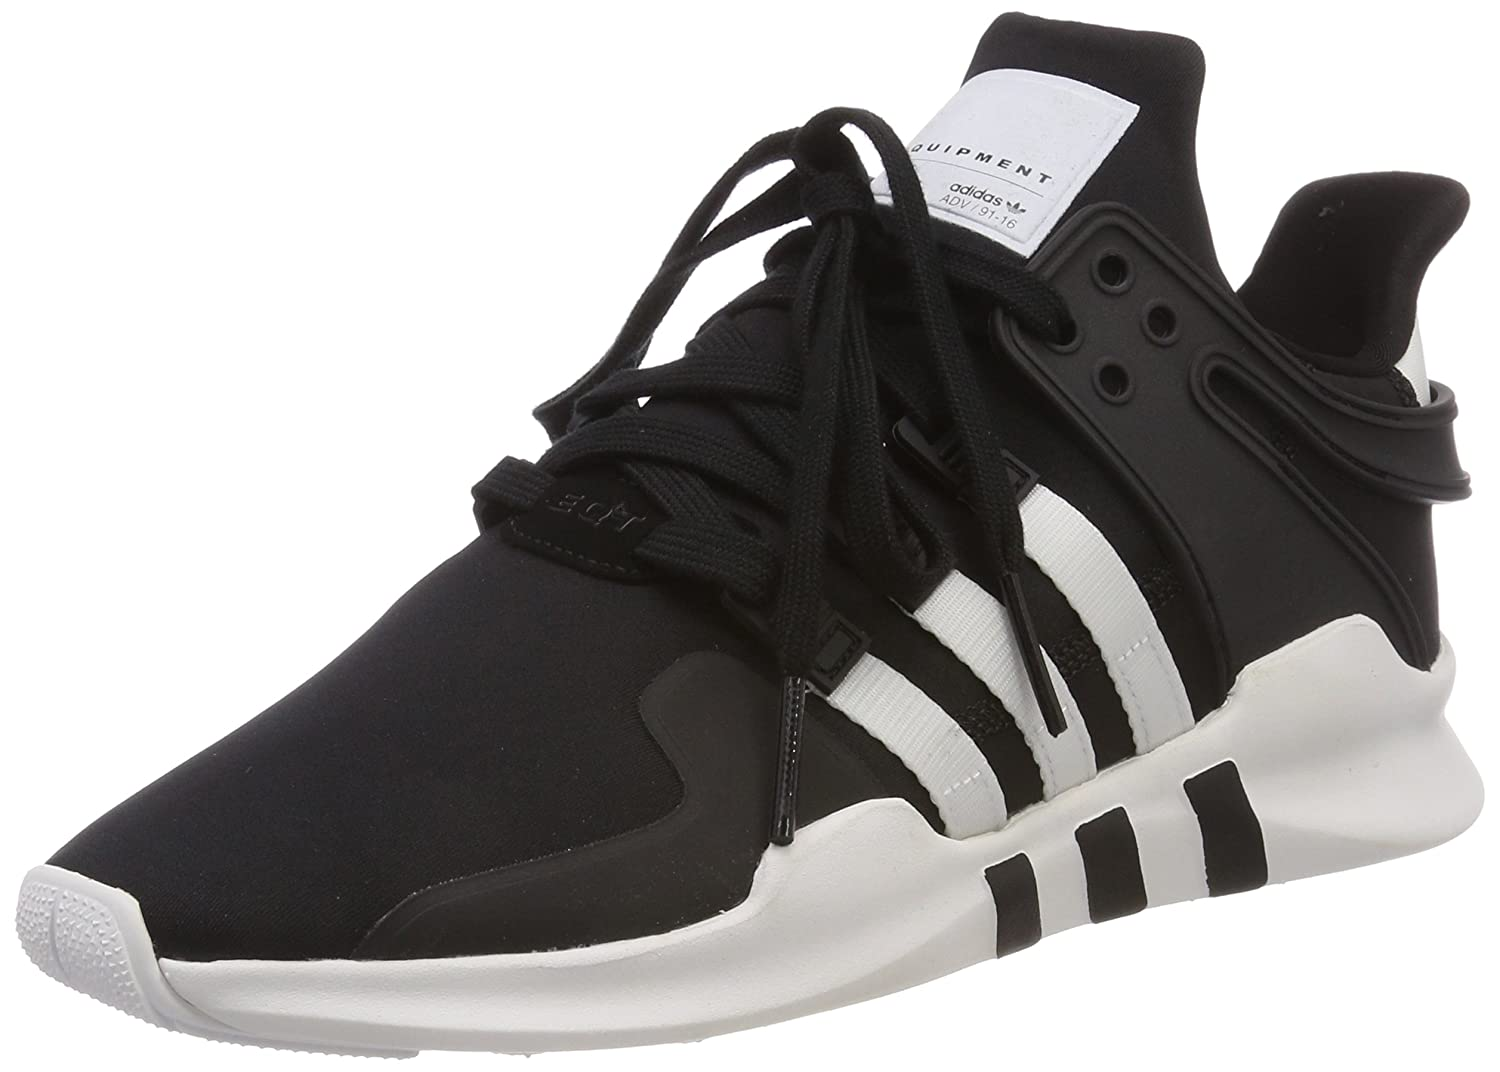 new arrival c0494 a69f0 adidas Men's EQT Support Adv Low-Top Sneakers